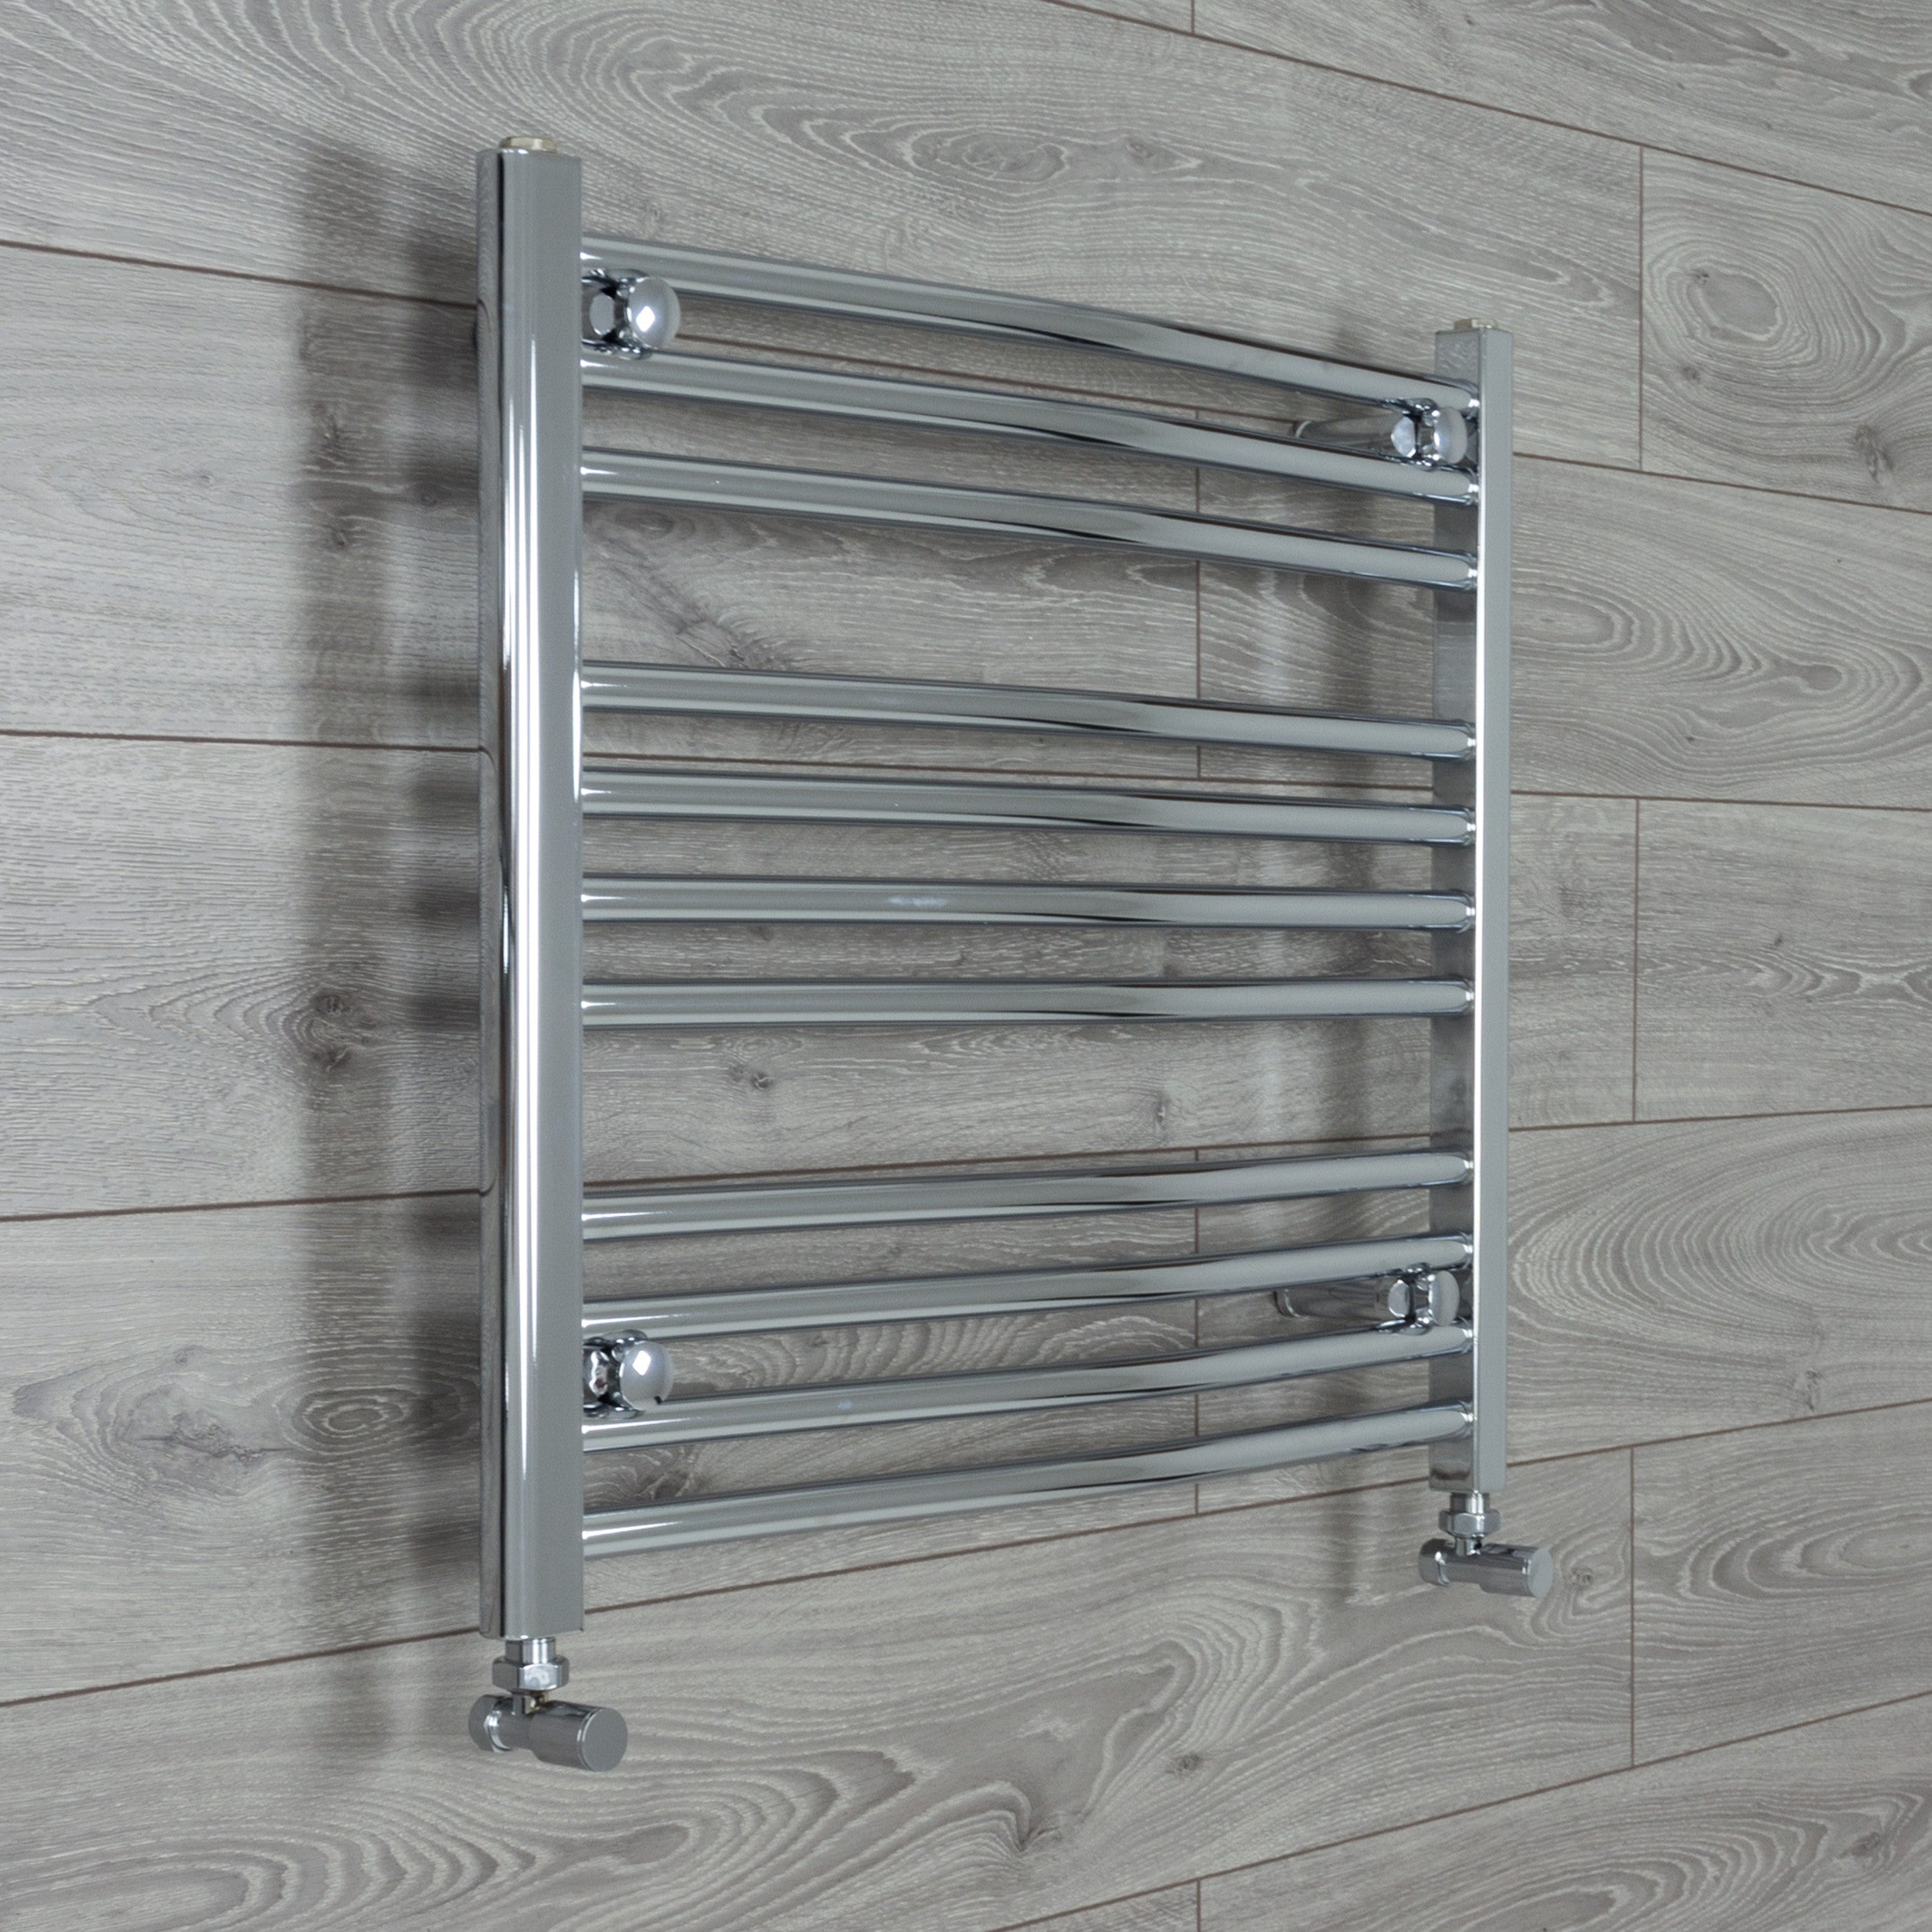 750mm x 600mm High Curved Chrome Towel Rail Radiator With Angled Valve